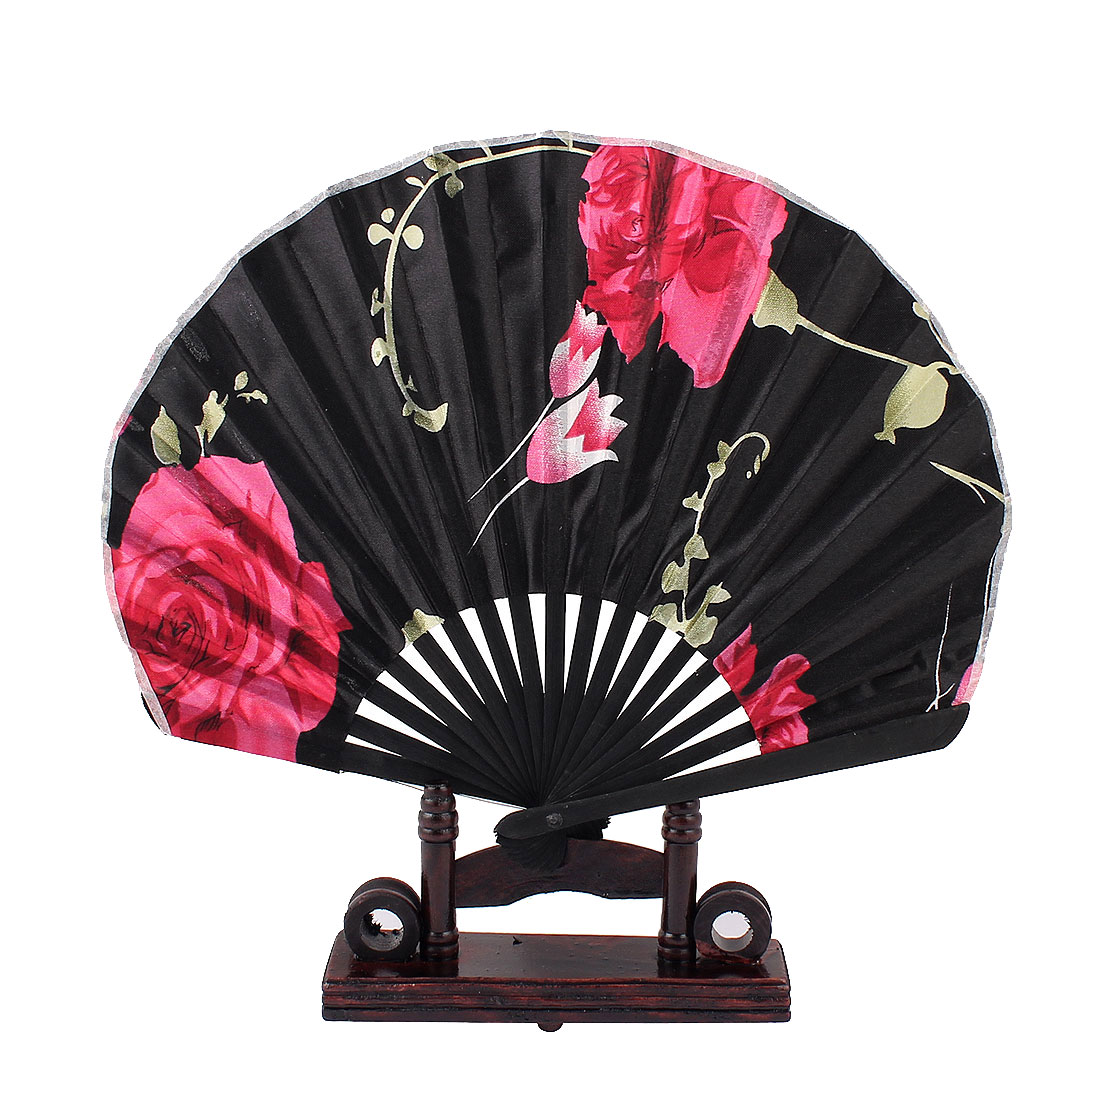 Bamboo Ribs Chinese Style Fuchsia Rose Flower Pattern Black Fabric Cloth Folding Hand Fan Decor Gift w Wooden Holder